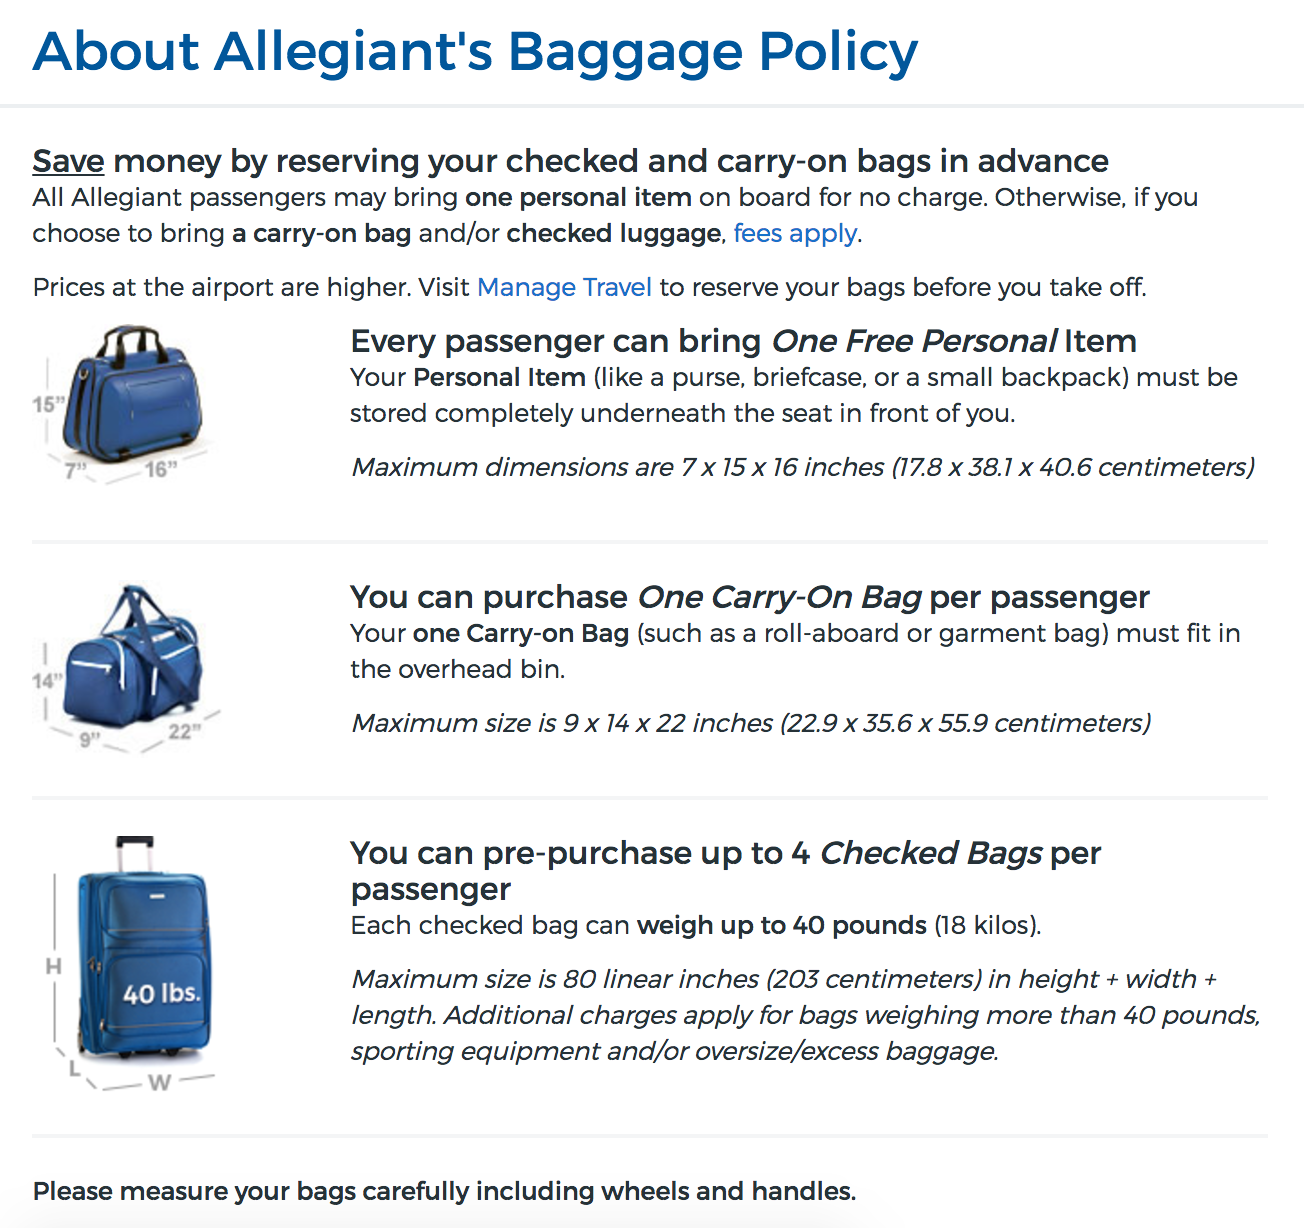 Allegiant's Baggage Policy